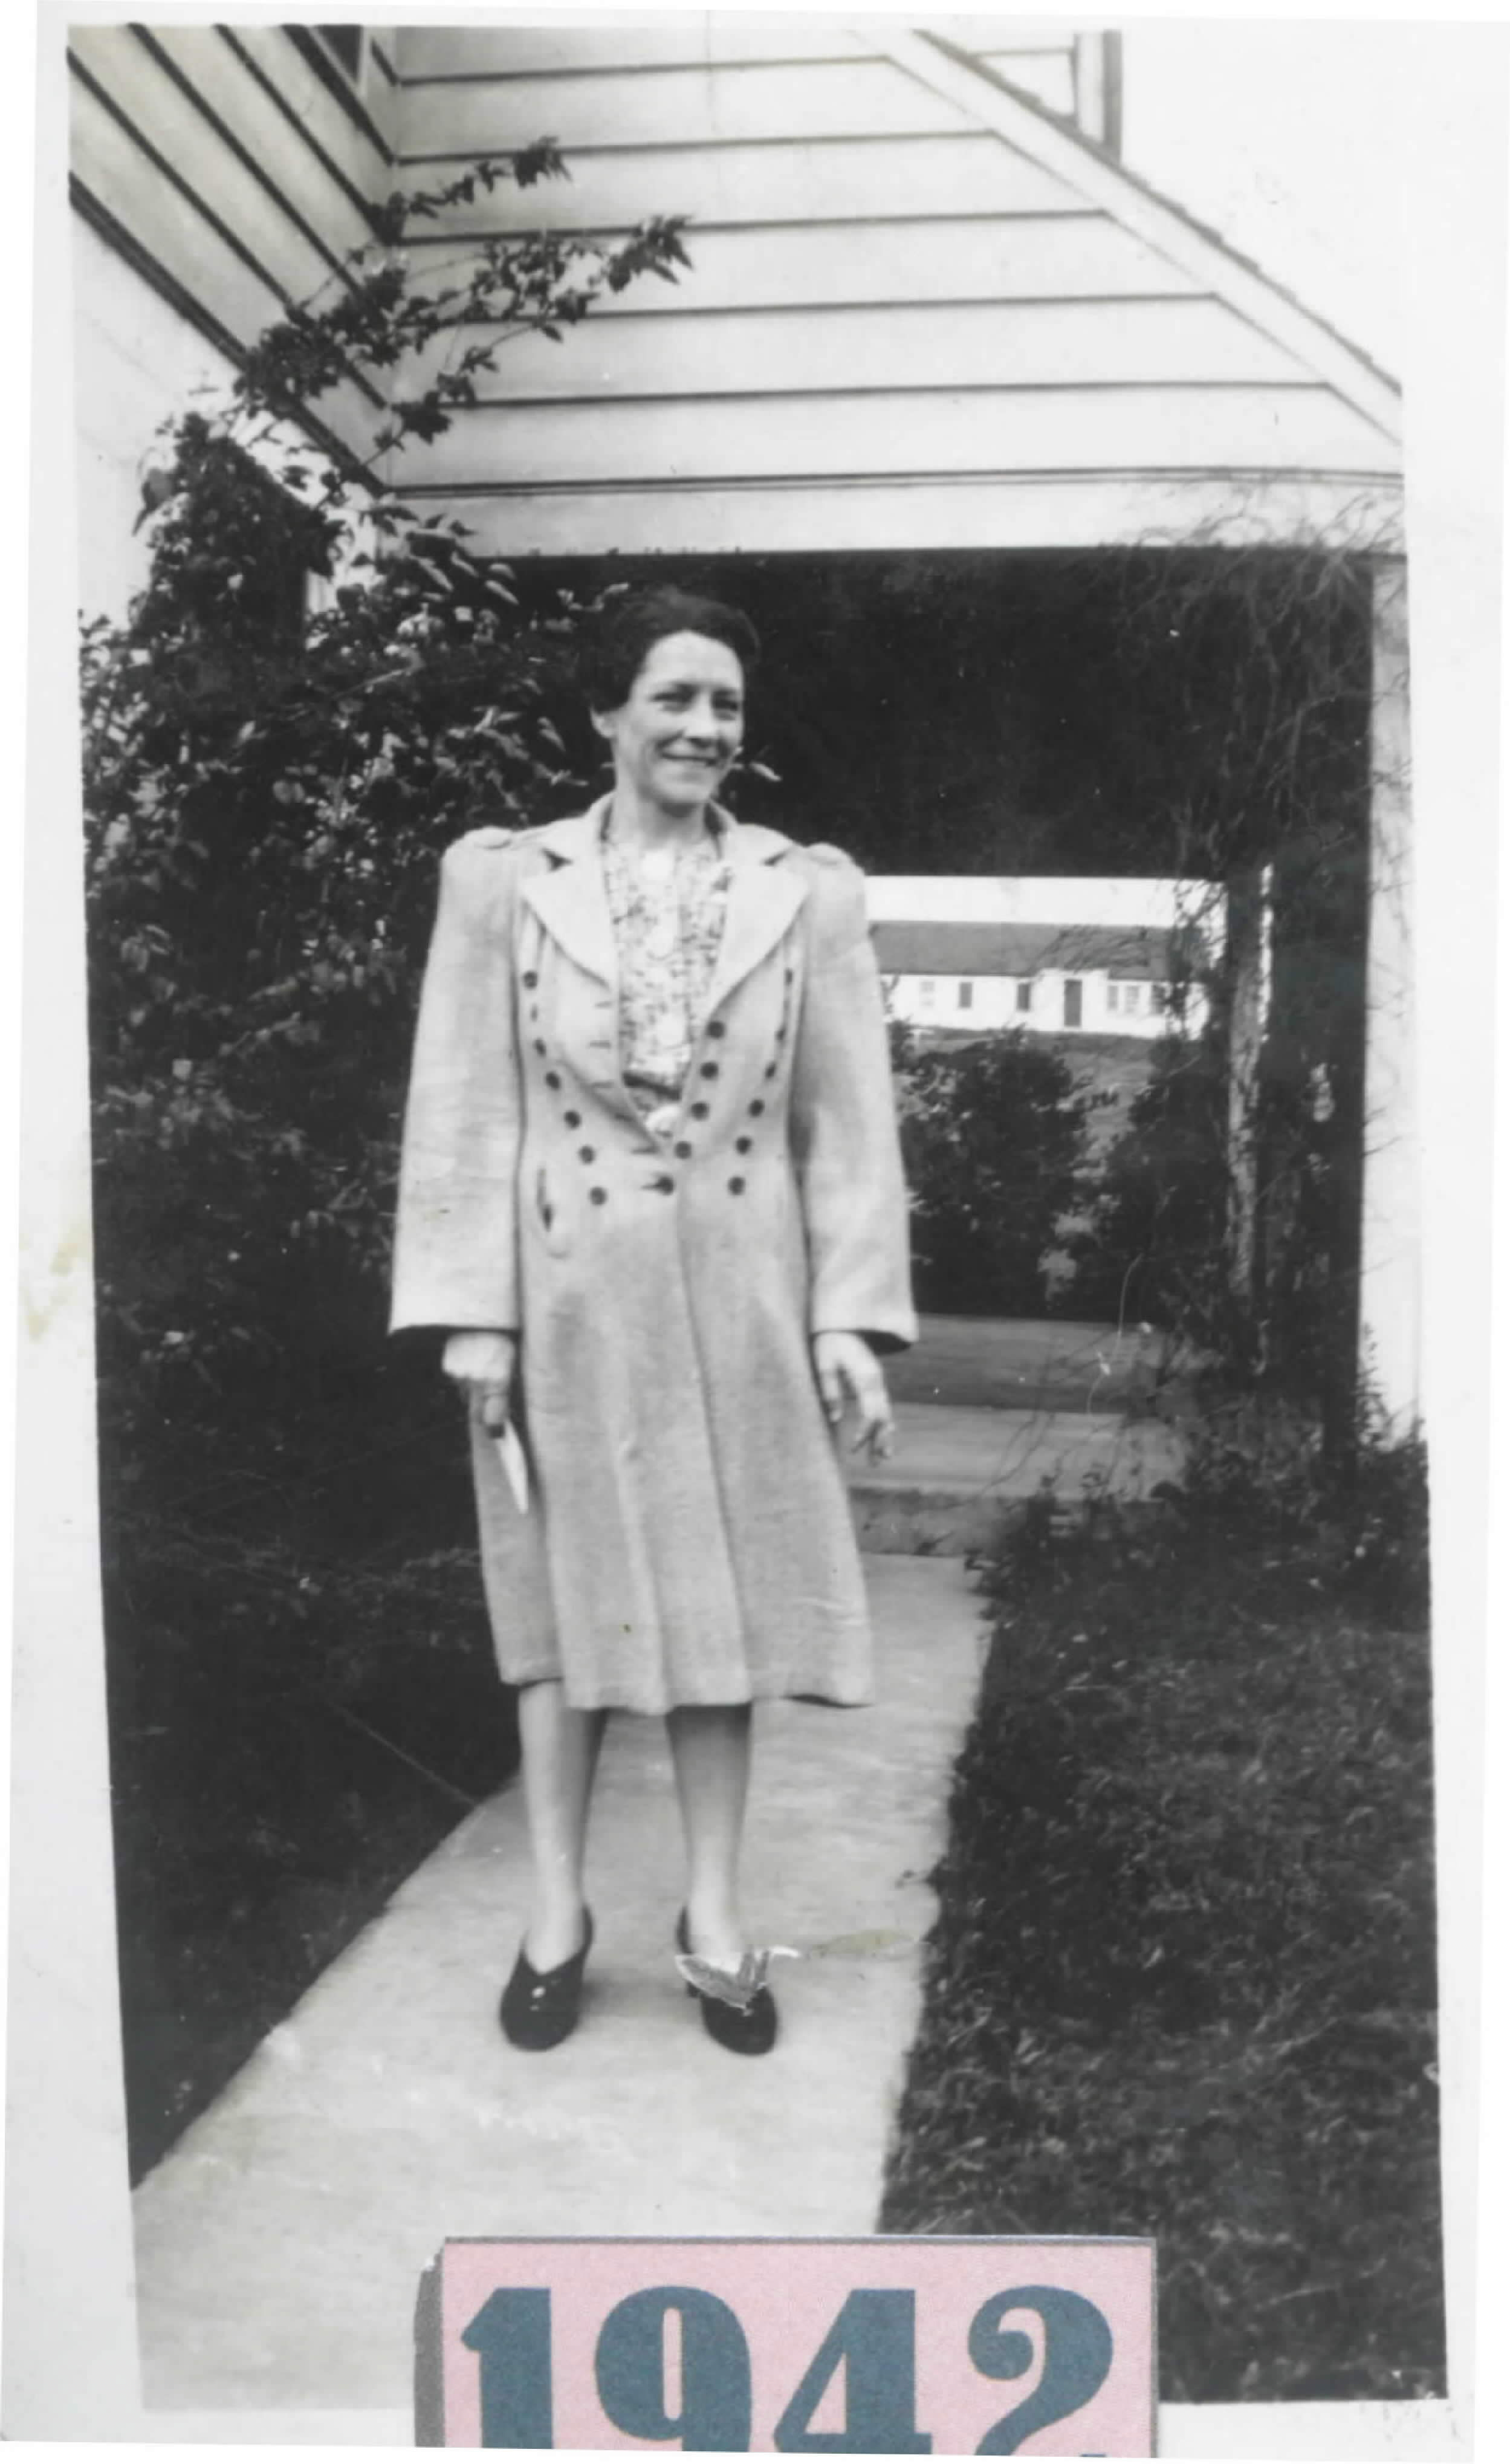 Ruth Heinz in front of E-15 porch in 1942